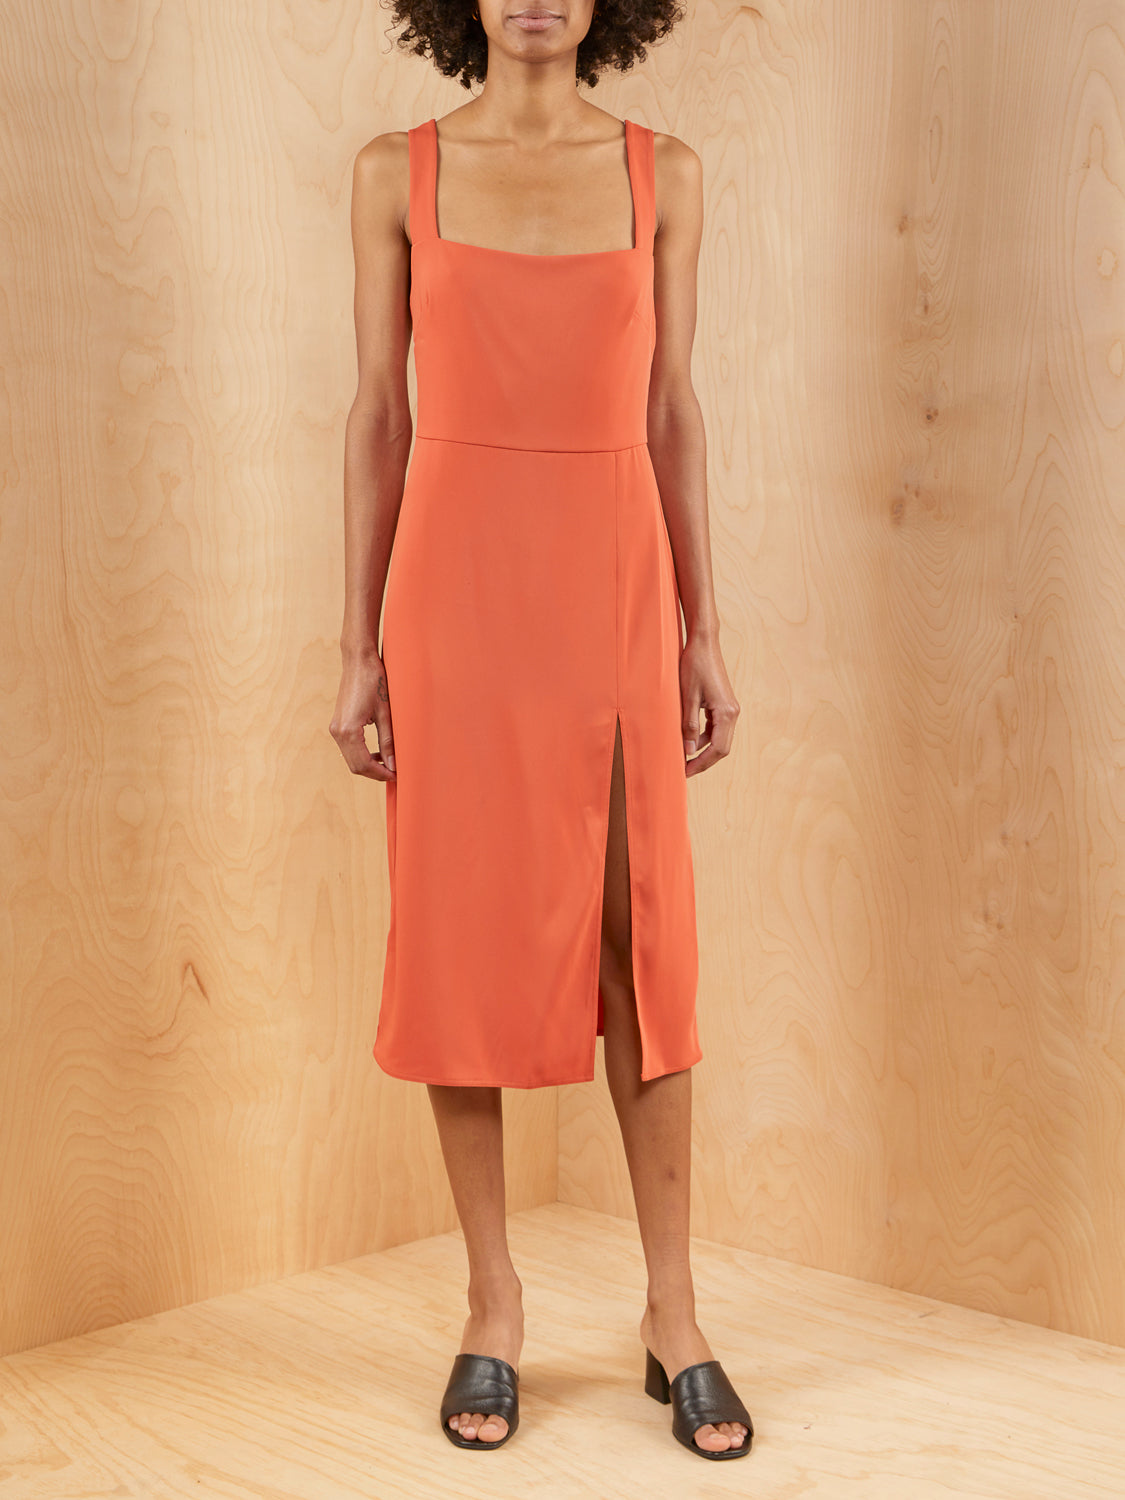 Aritzia Avenir Rust Dress